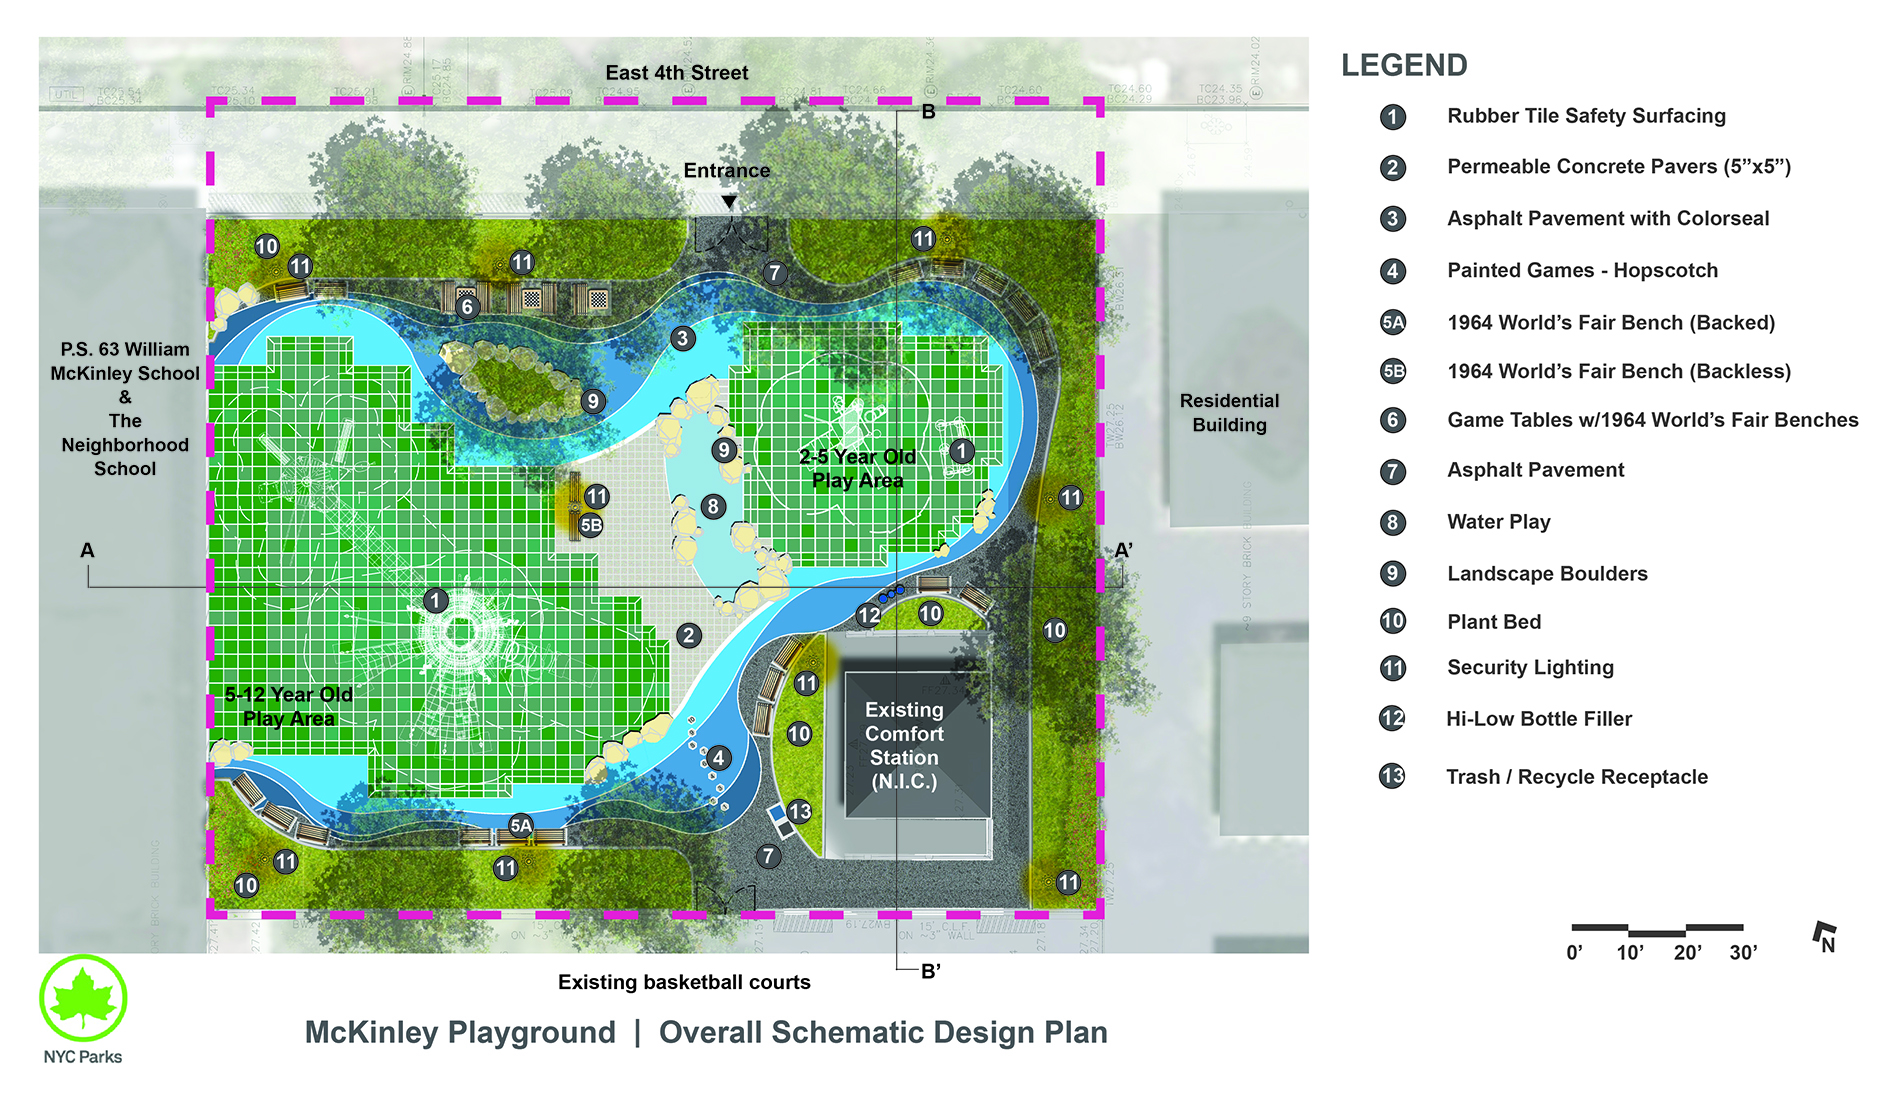 Design of McKinley Playground Play Area Reconstruction